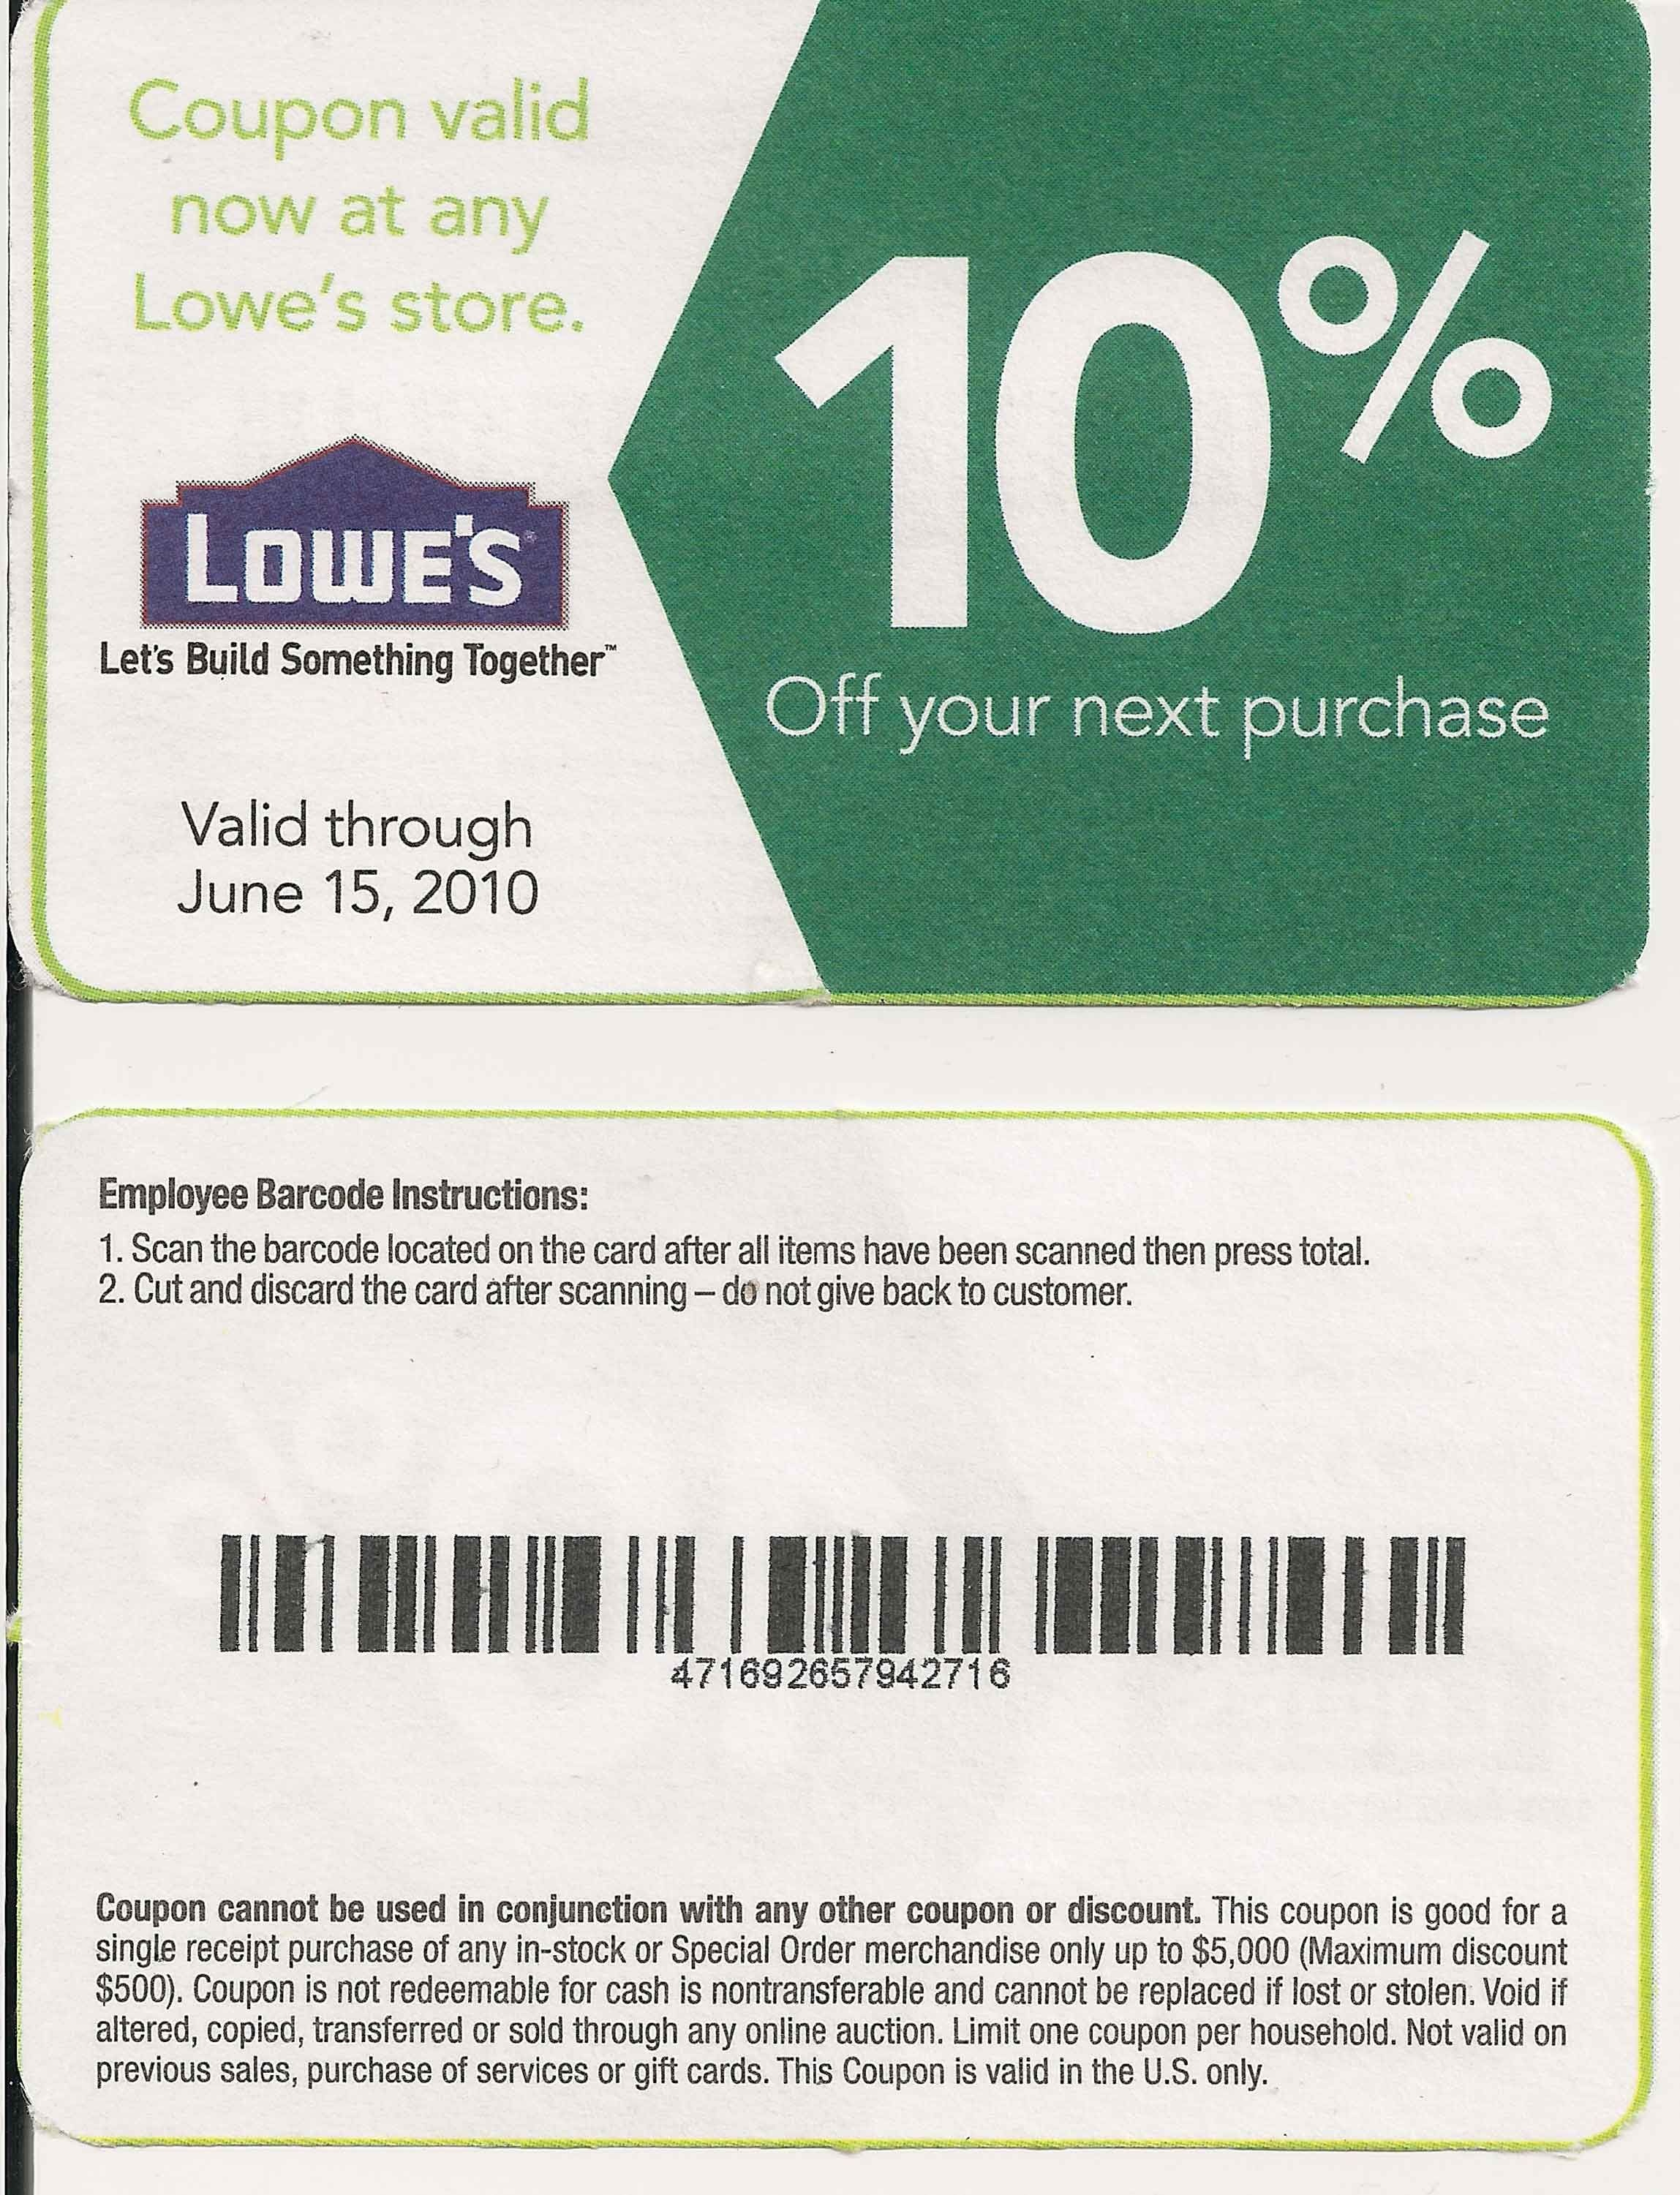 Printable Lowes Coupon 20% Off &10 Off Codes December 2016 | Stuff - Lowes Coupons 20 Free Printable